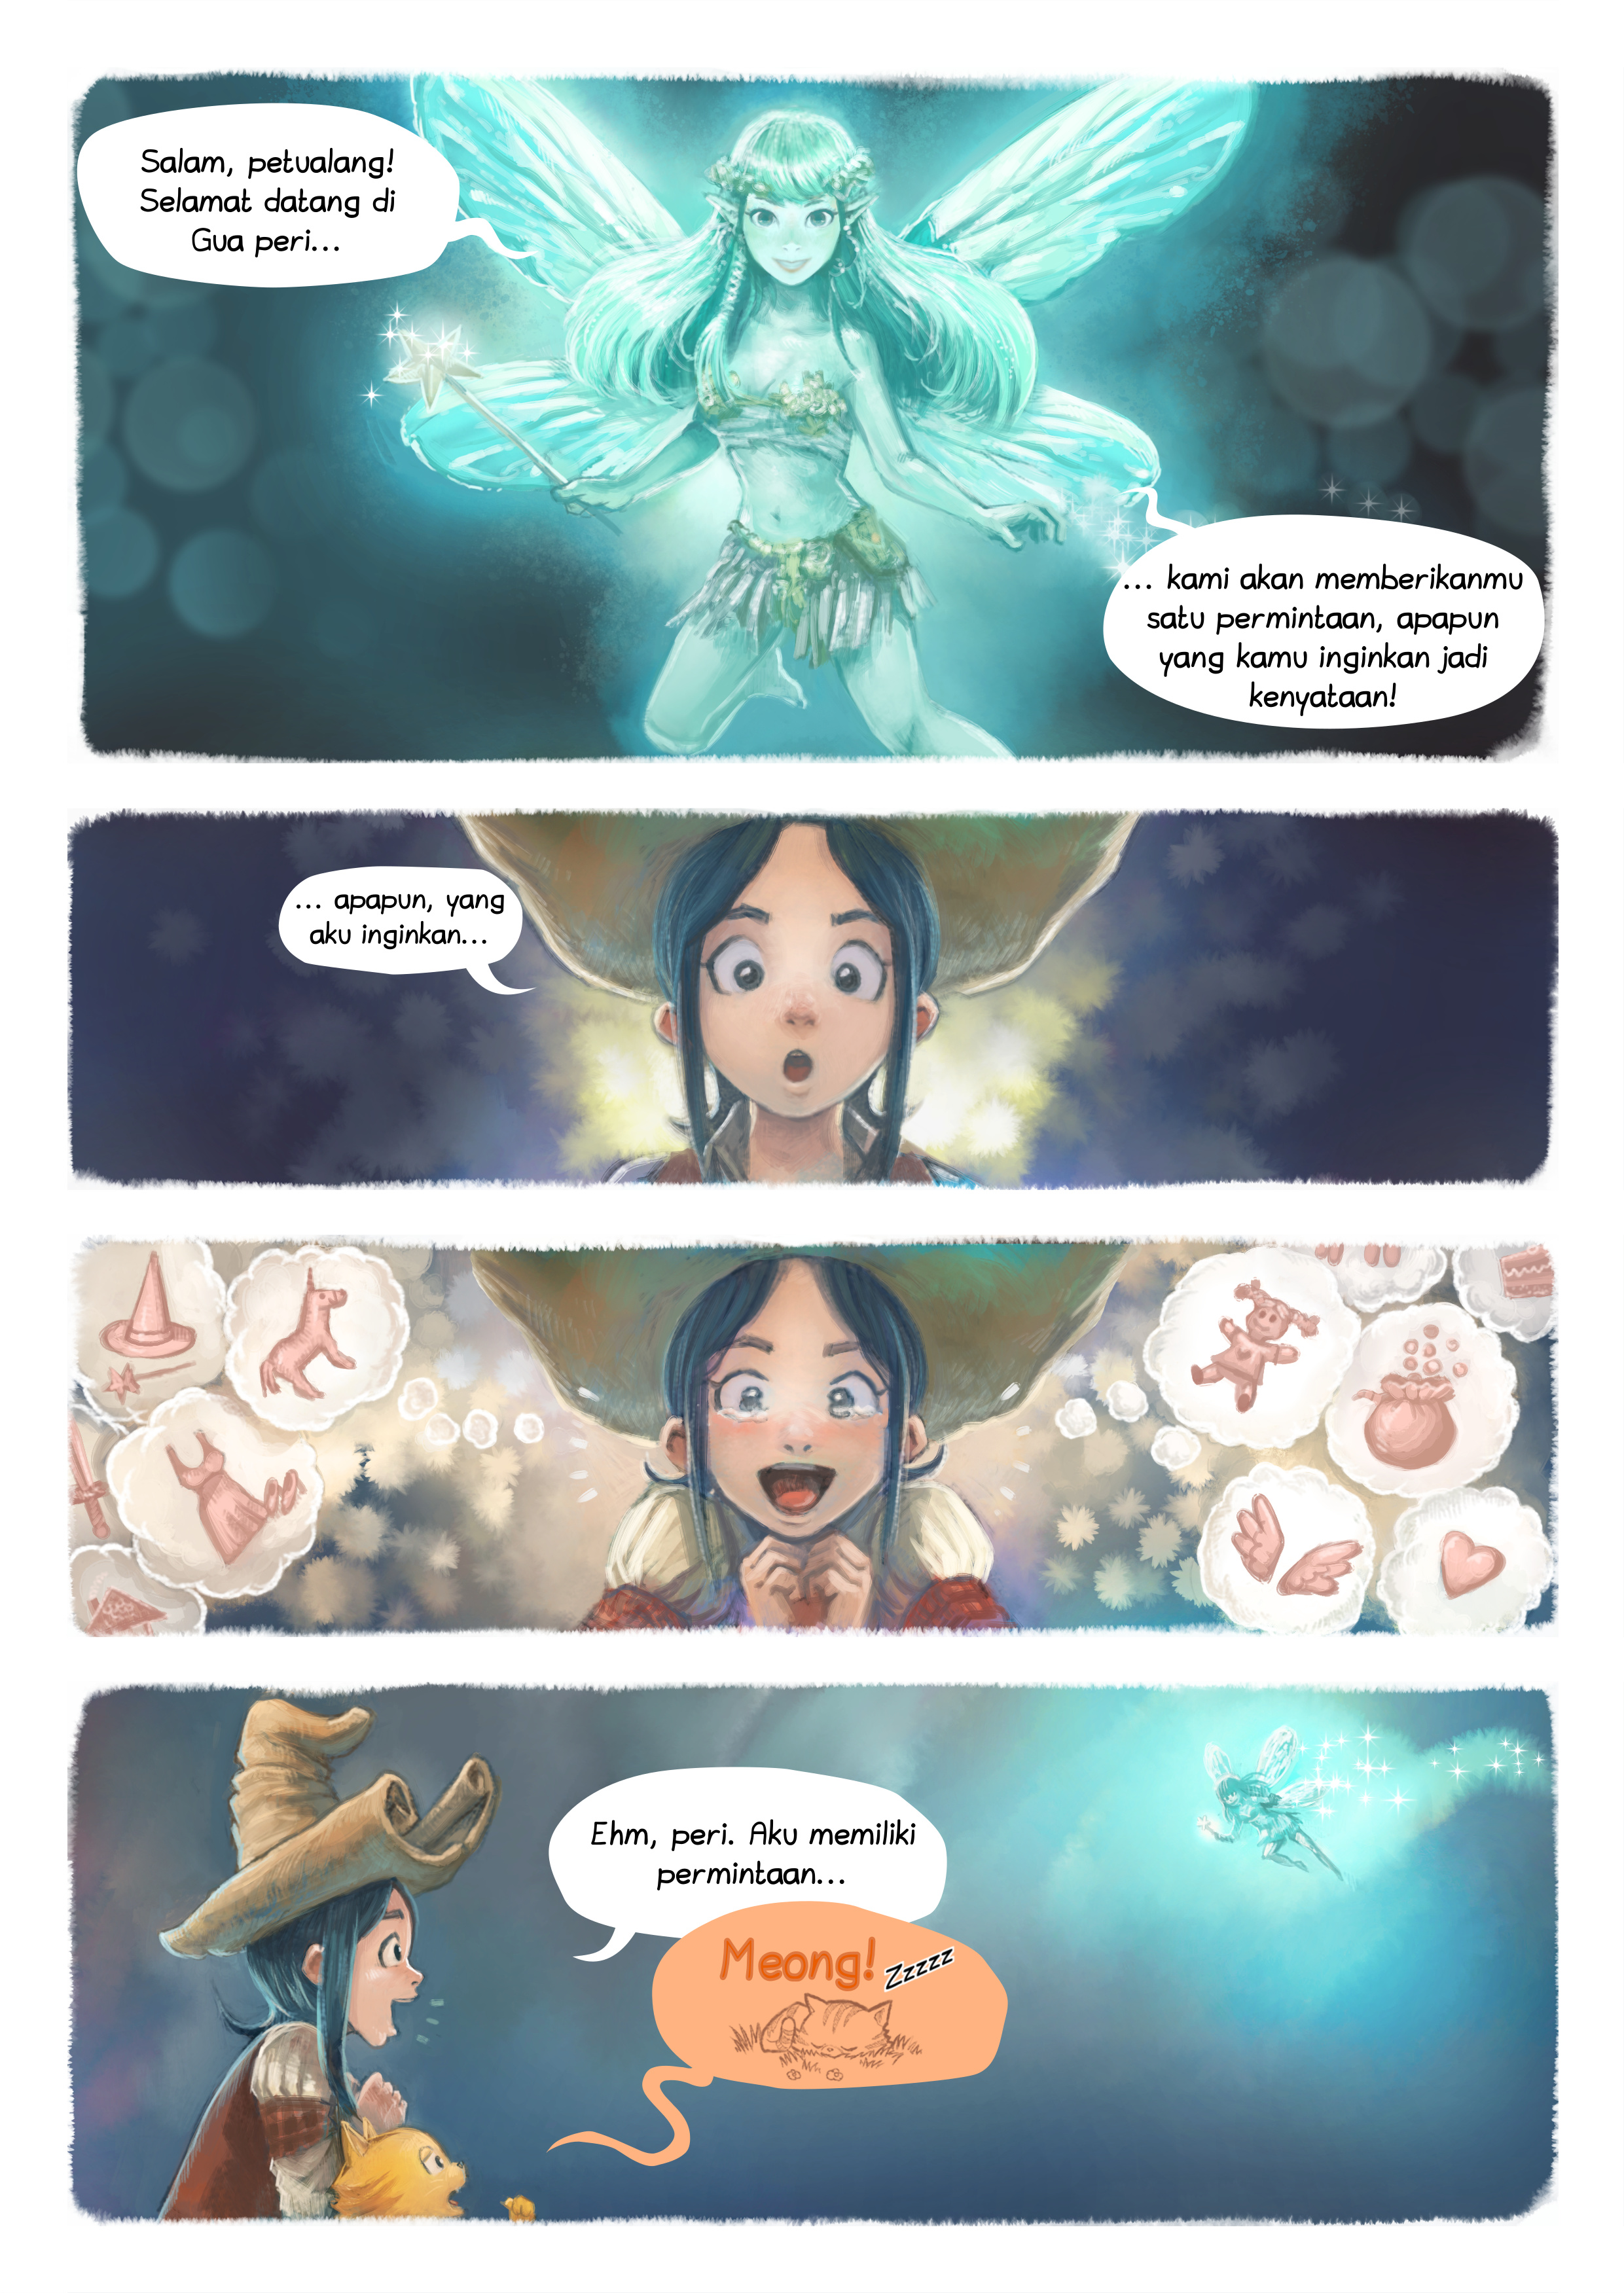 Episode 7: Permintaan, Page 4